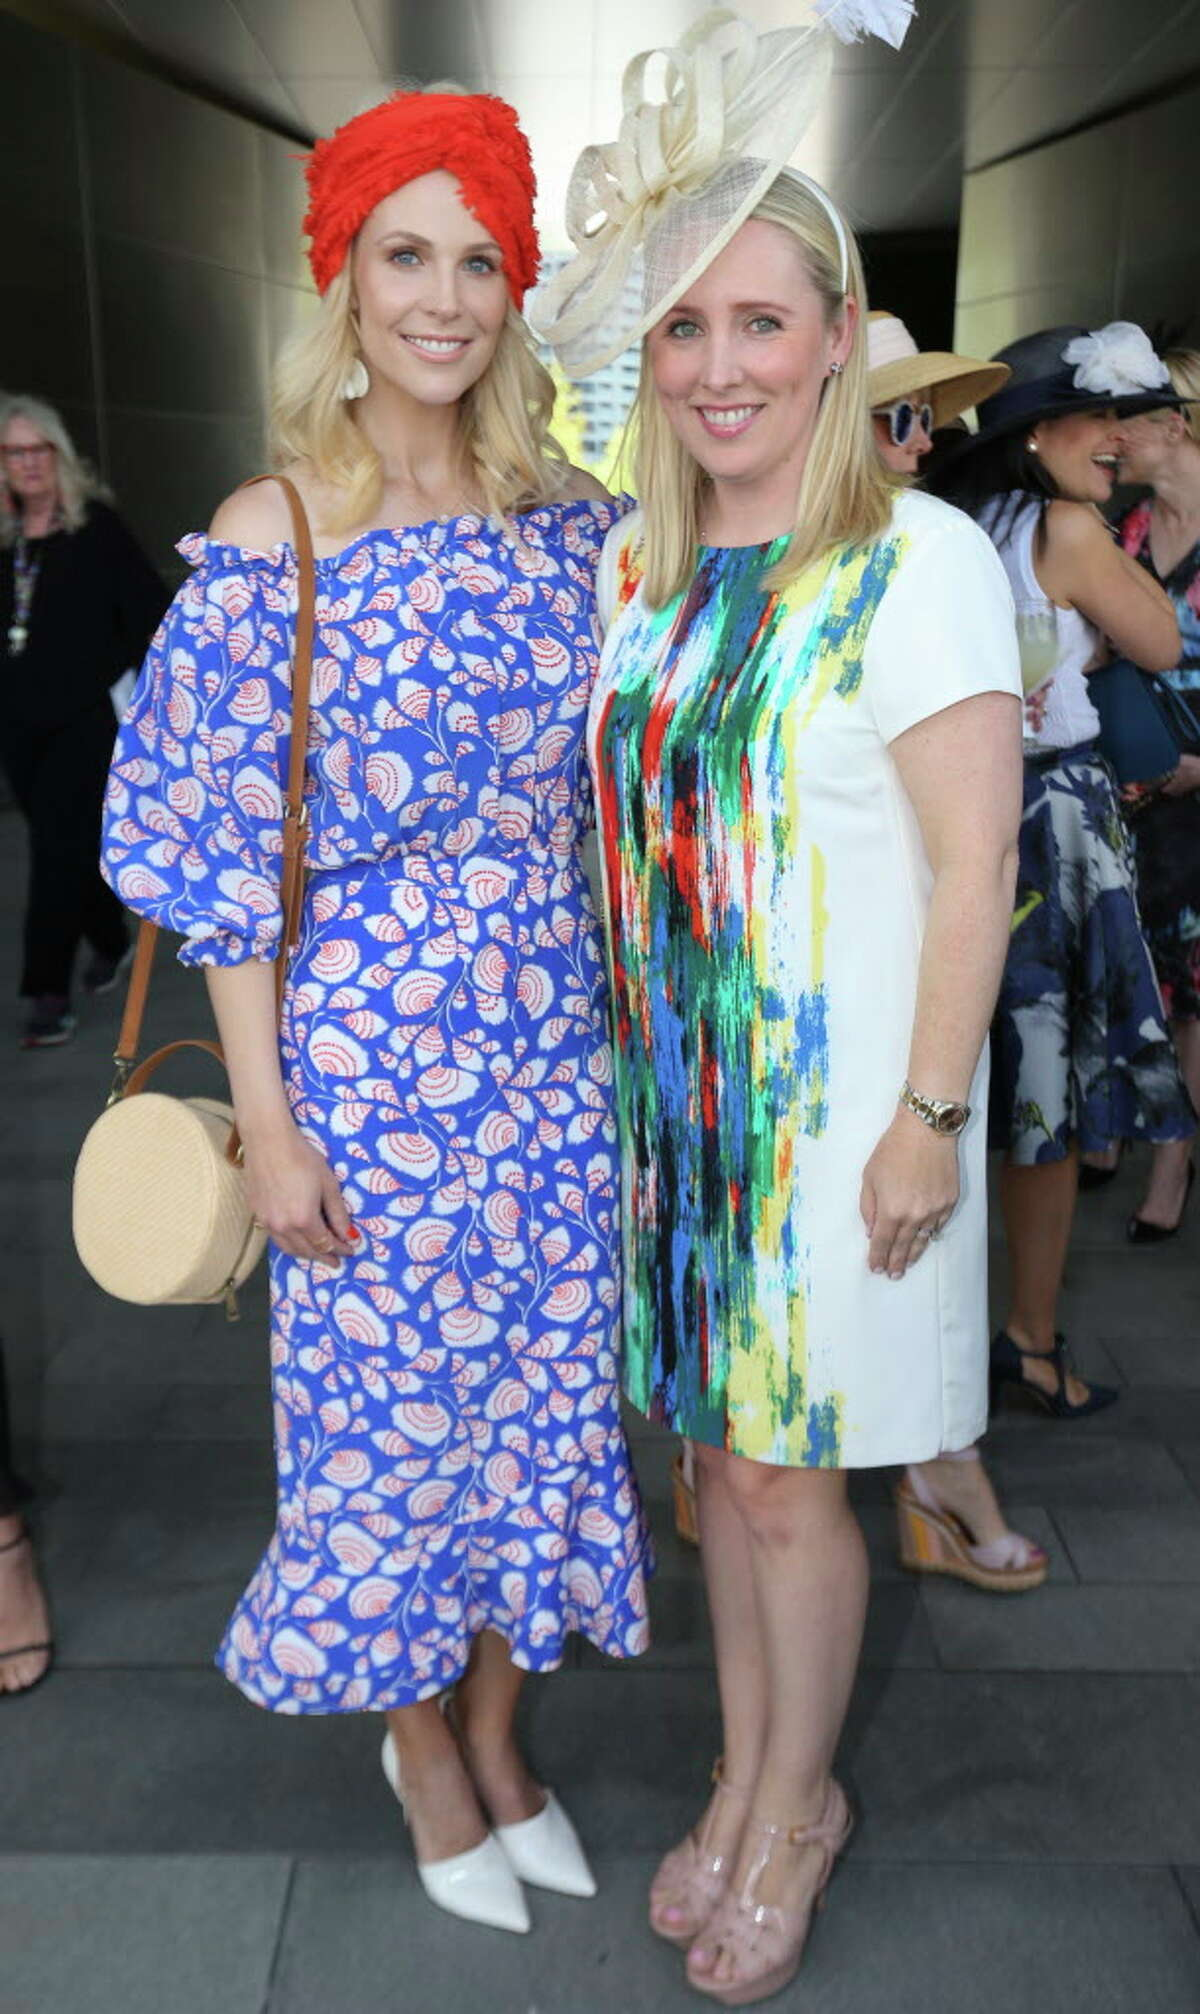 Kathleen Jennings, left, and Liz Anders pose for a photograph at the Hats in the Park luncheon at the Cherie Flores Garden Pavilion on Thursday, March 22, 2018, in Houston.